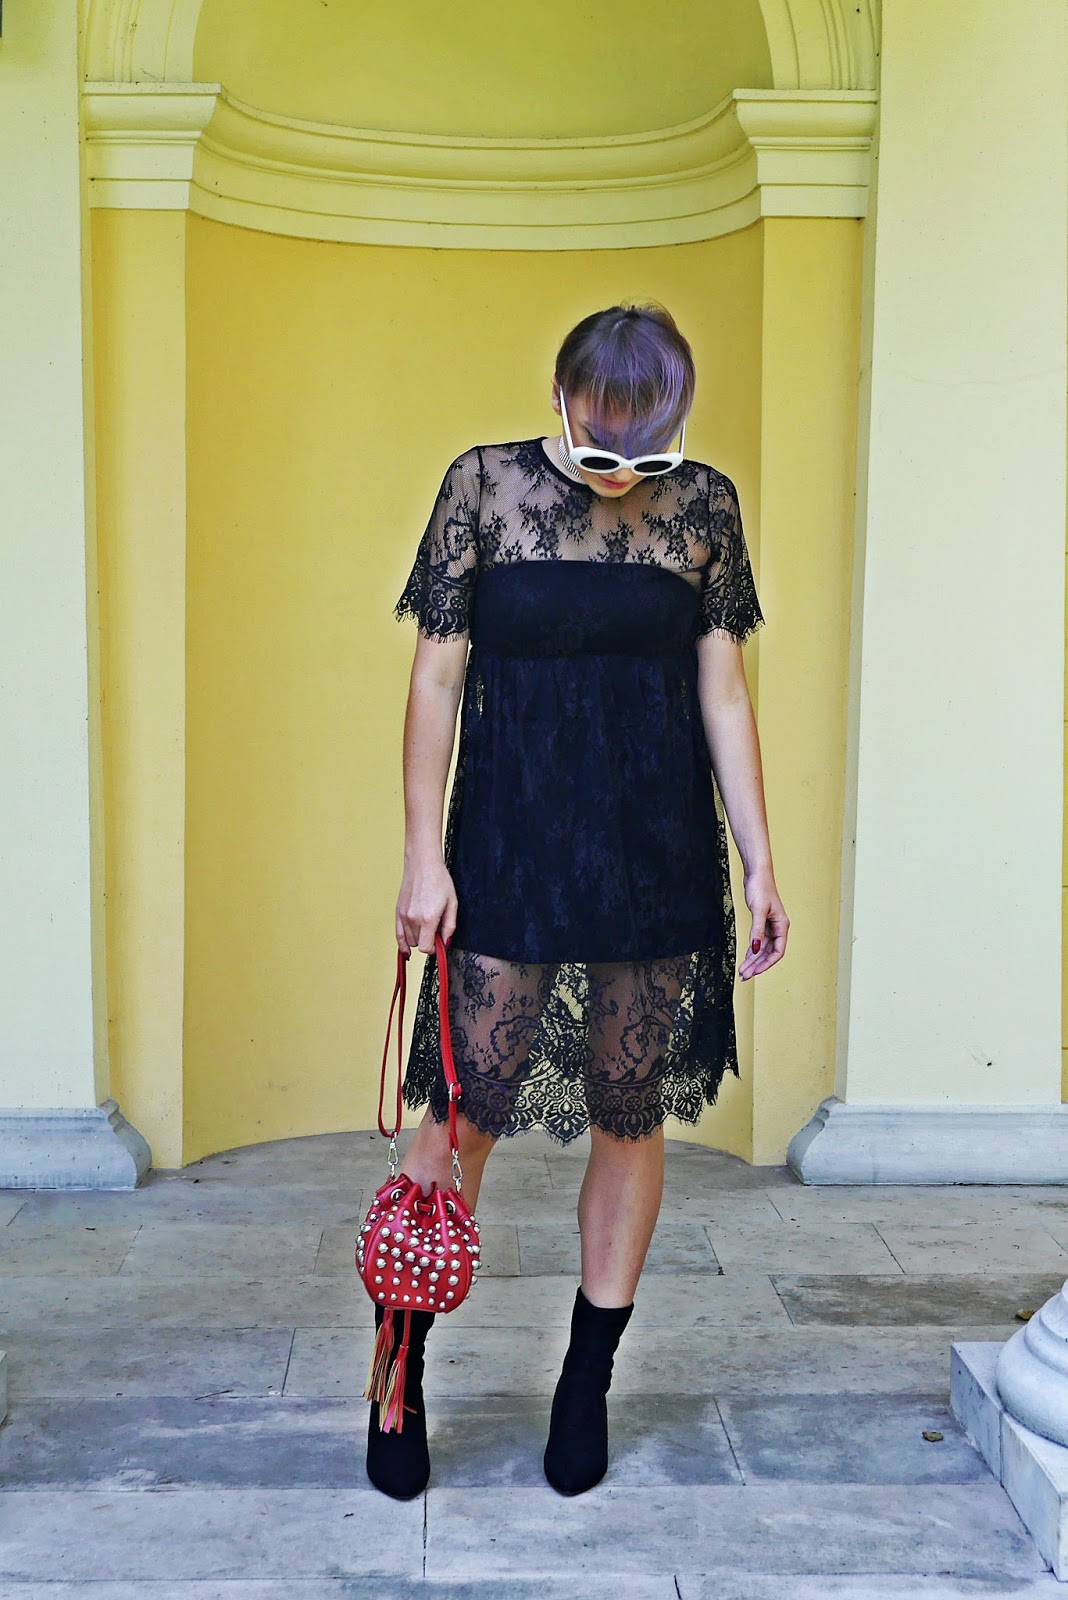 1_rosegal_lace_dress_red_bag_studs_socks_shoes_boots_white_retro_sunglass_karyn_blog_1309174